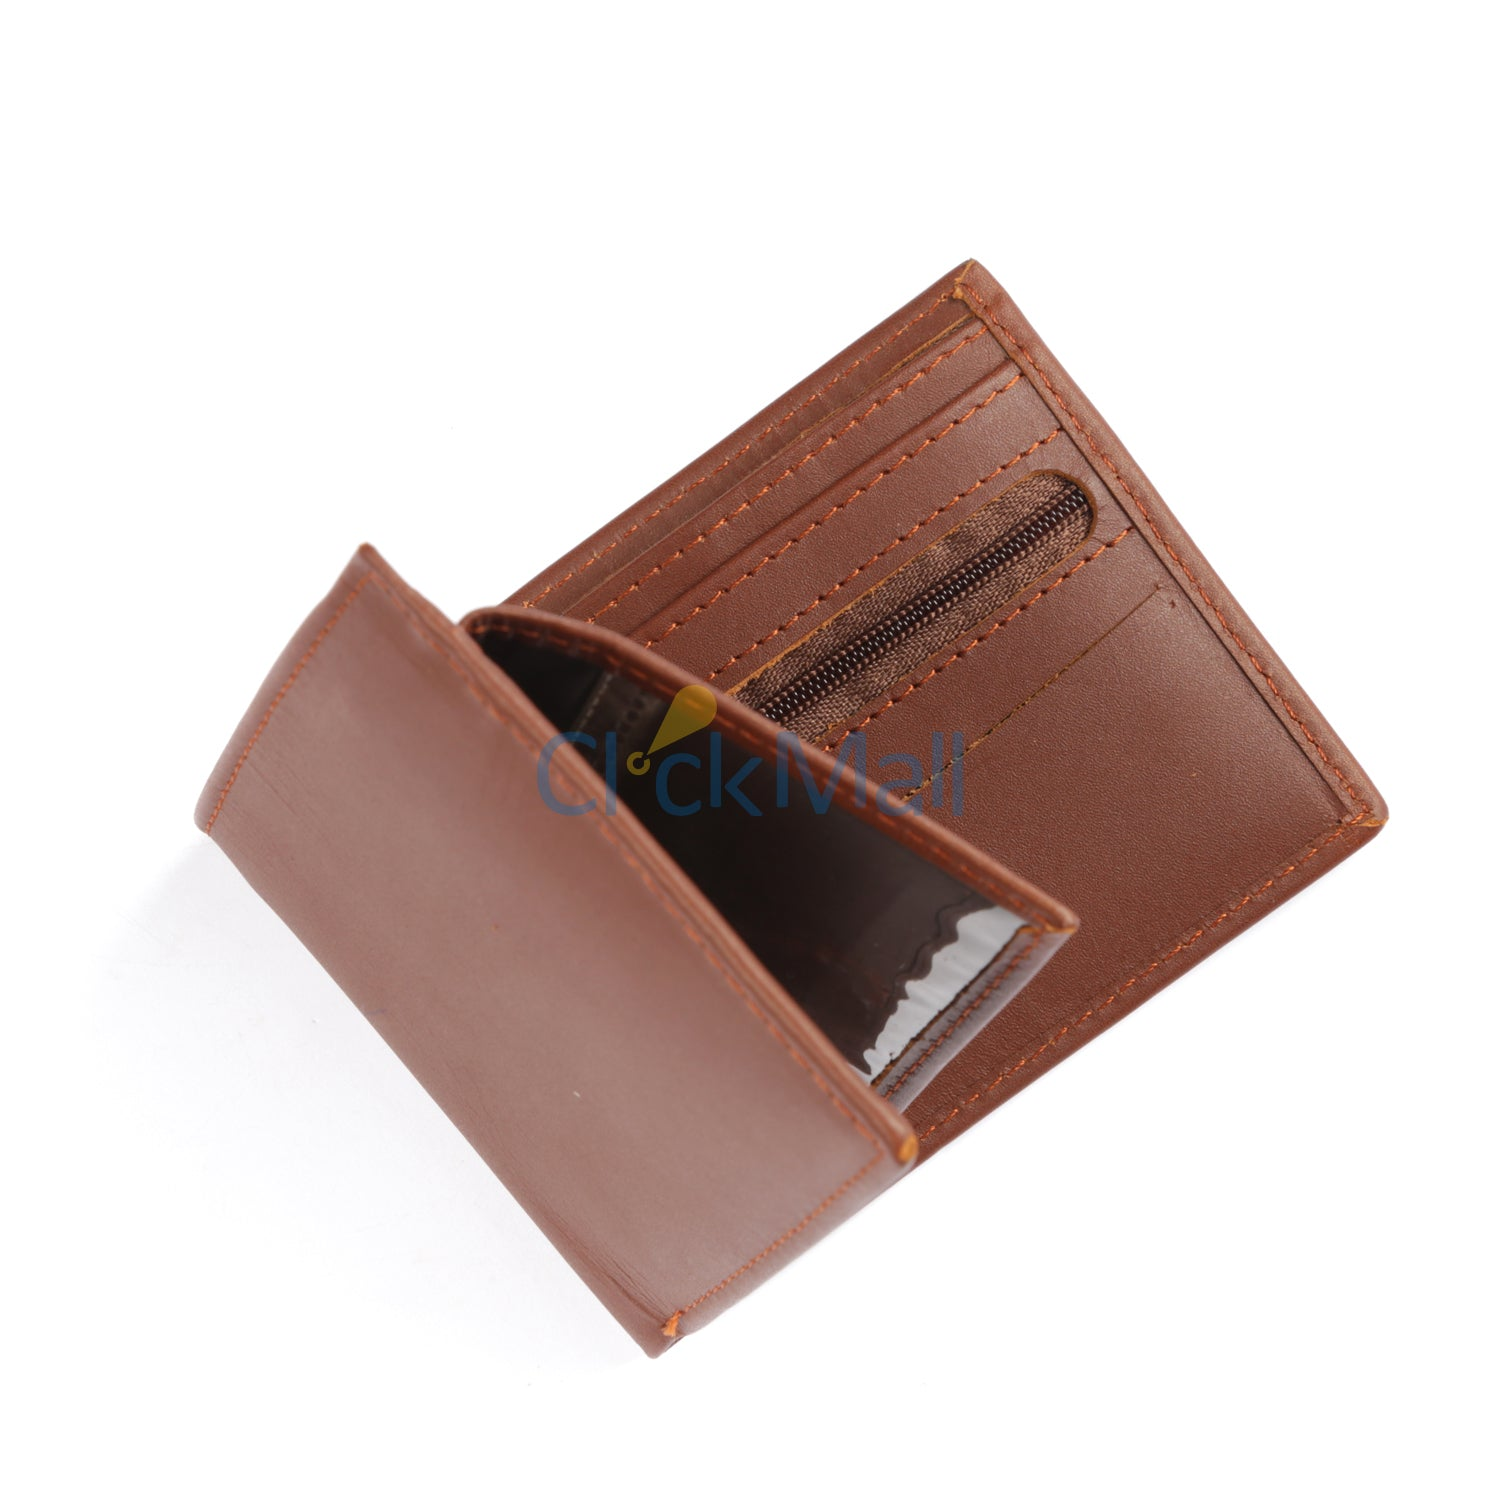 Sheikh Leather Brown Leather Wallet-04 SLC-FC-Coin